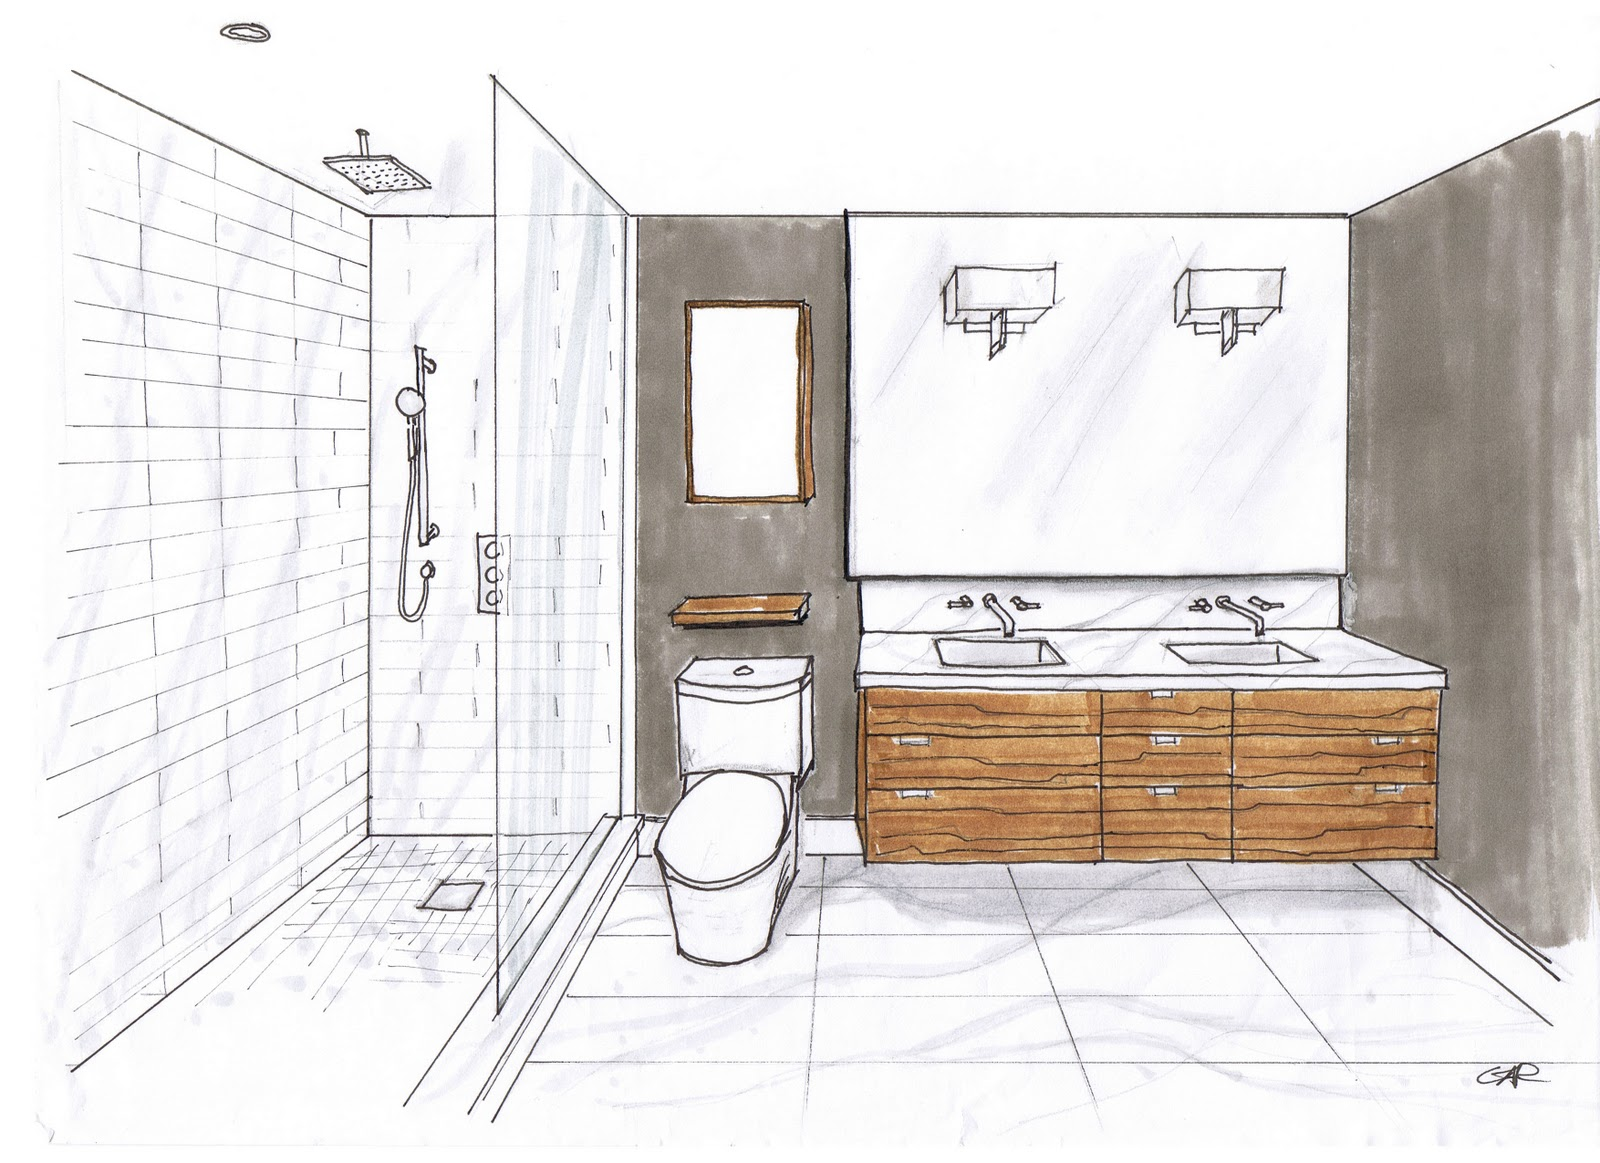 Creed 70 39 s bungalow bathroom designs for 10 by 10 room layout